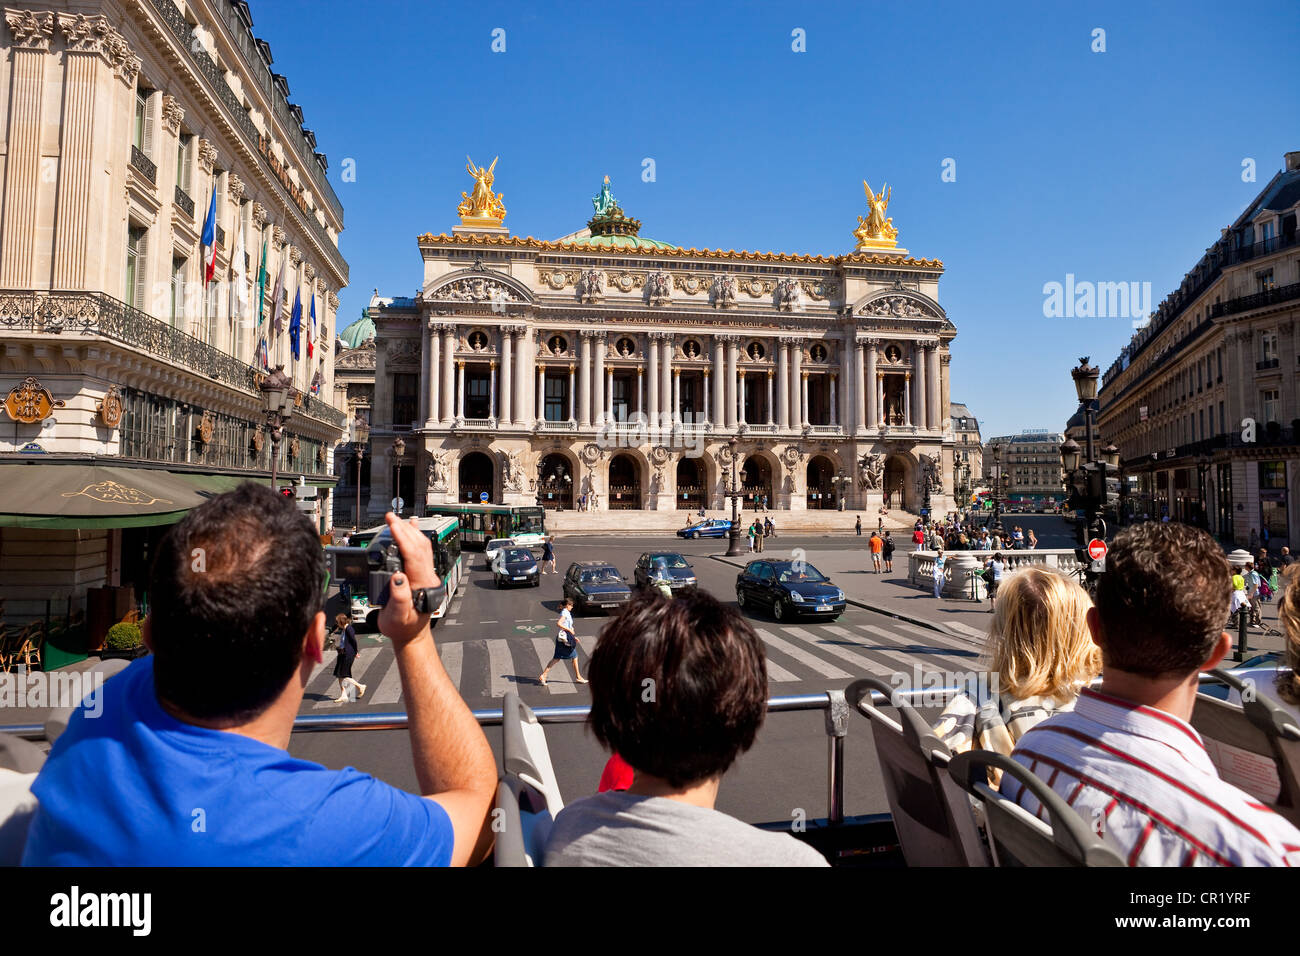 France, Paris, tourist trip on double decker bus, passing in front of Opera Garnier - Stock Image